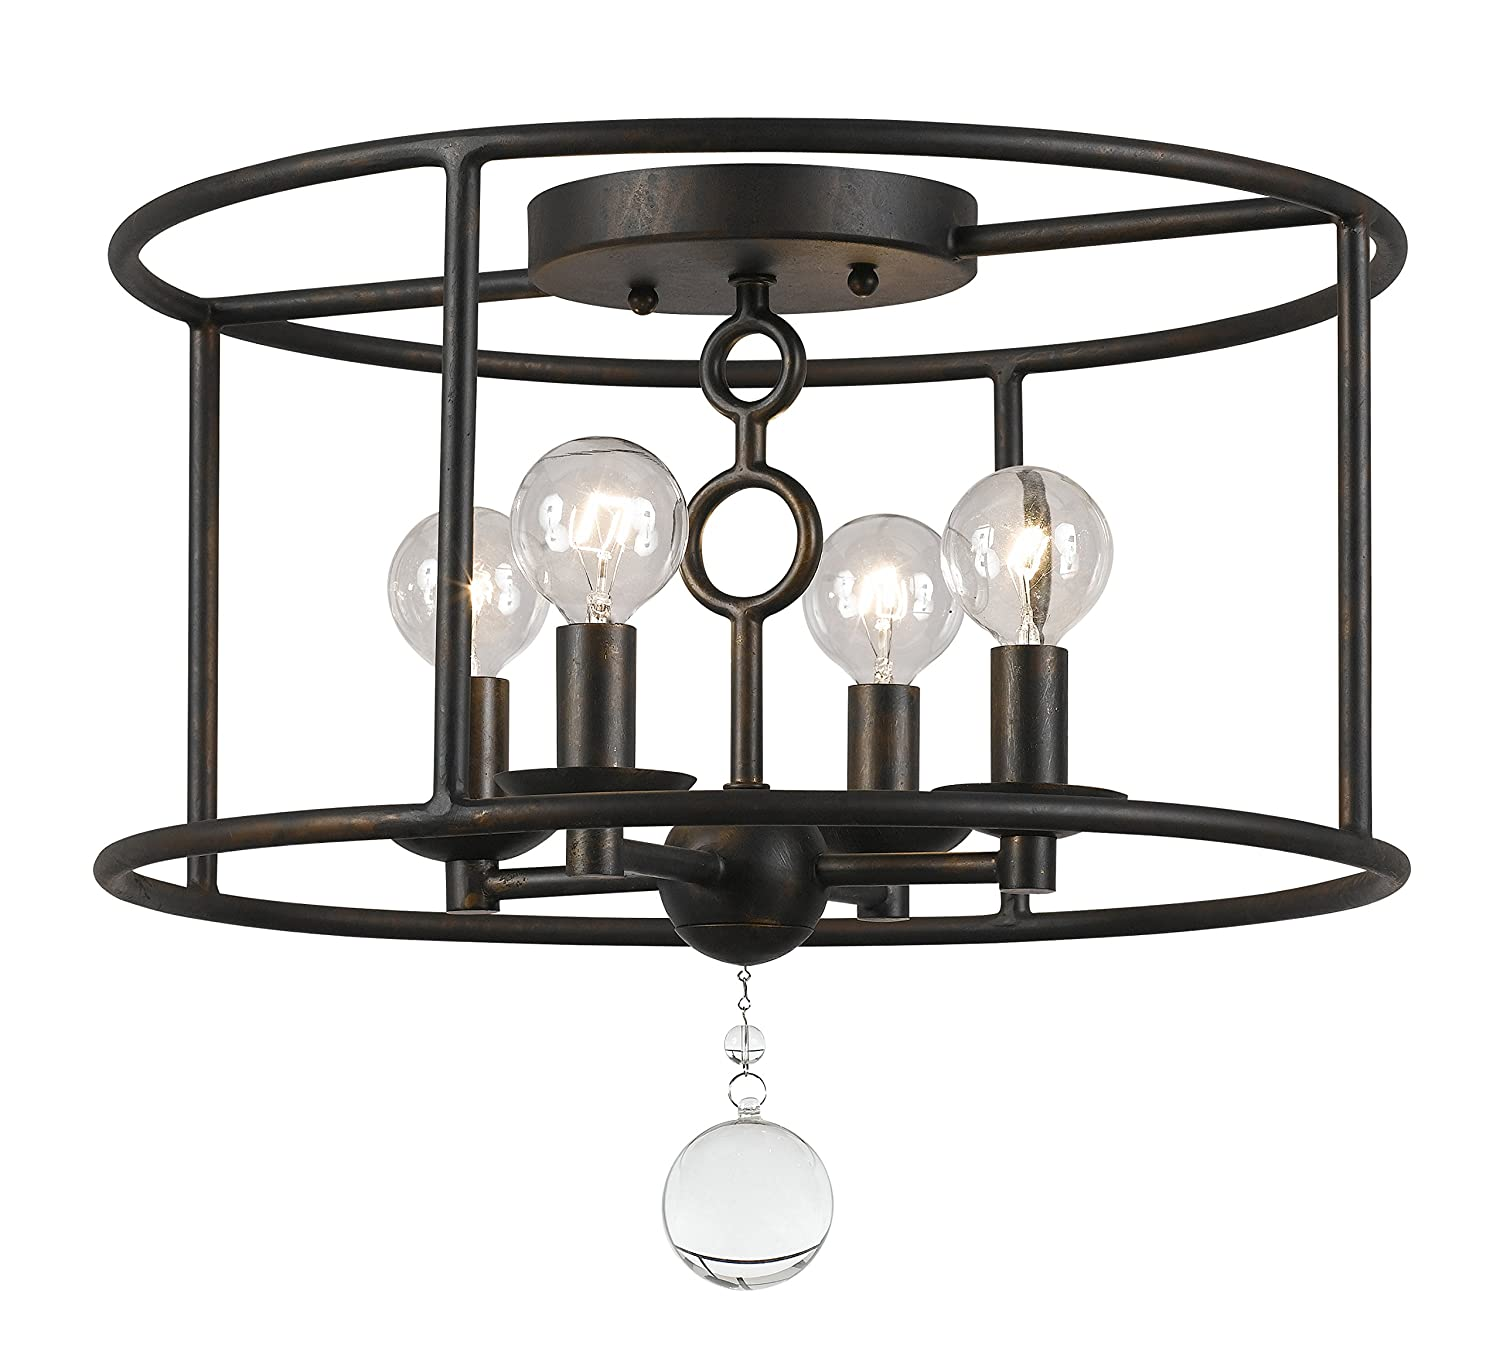 Crystorama 9267-EB Crystal Accents Four Light Ceiling Mounts from Cameron collection in Bronze/Darkfinish,